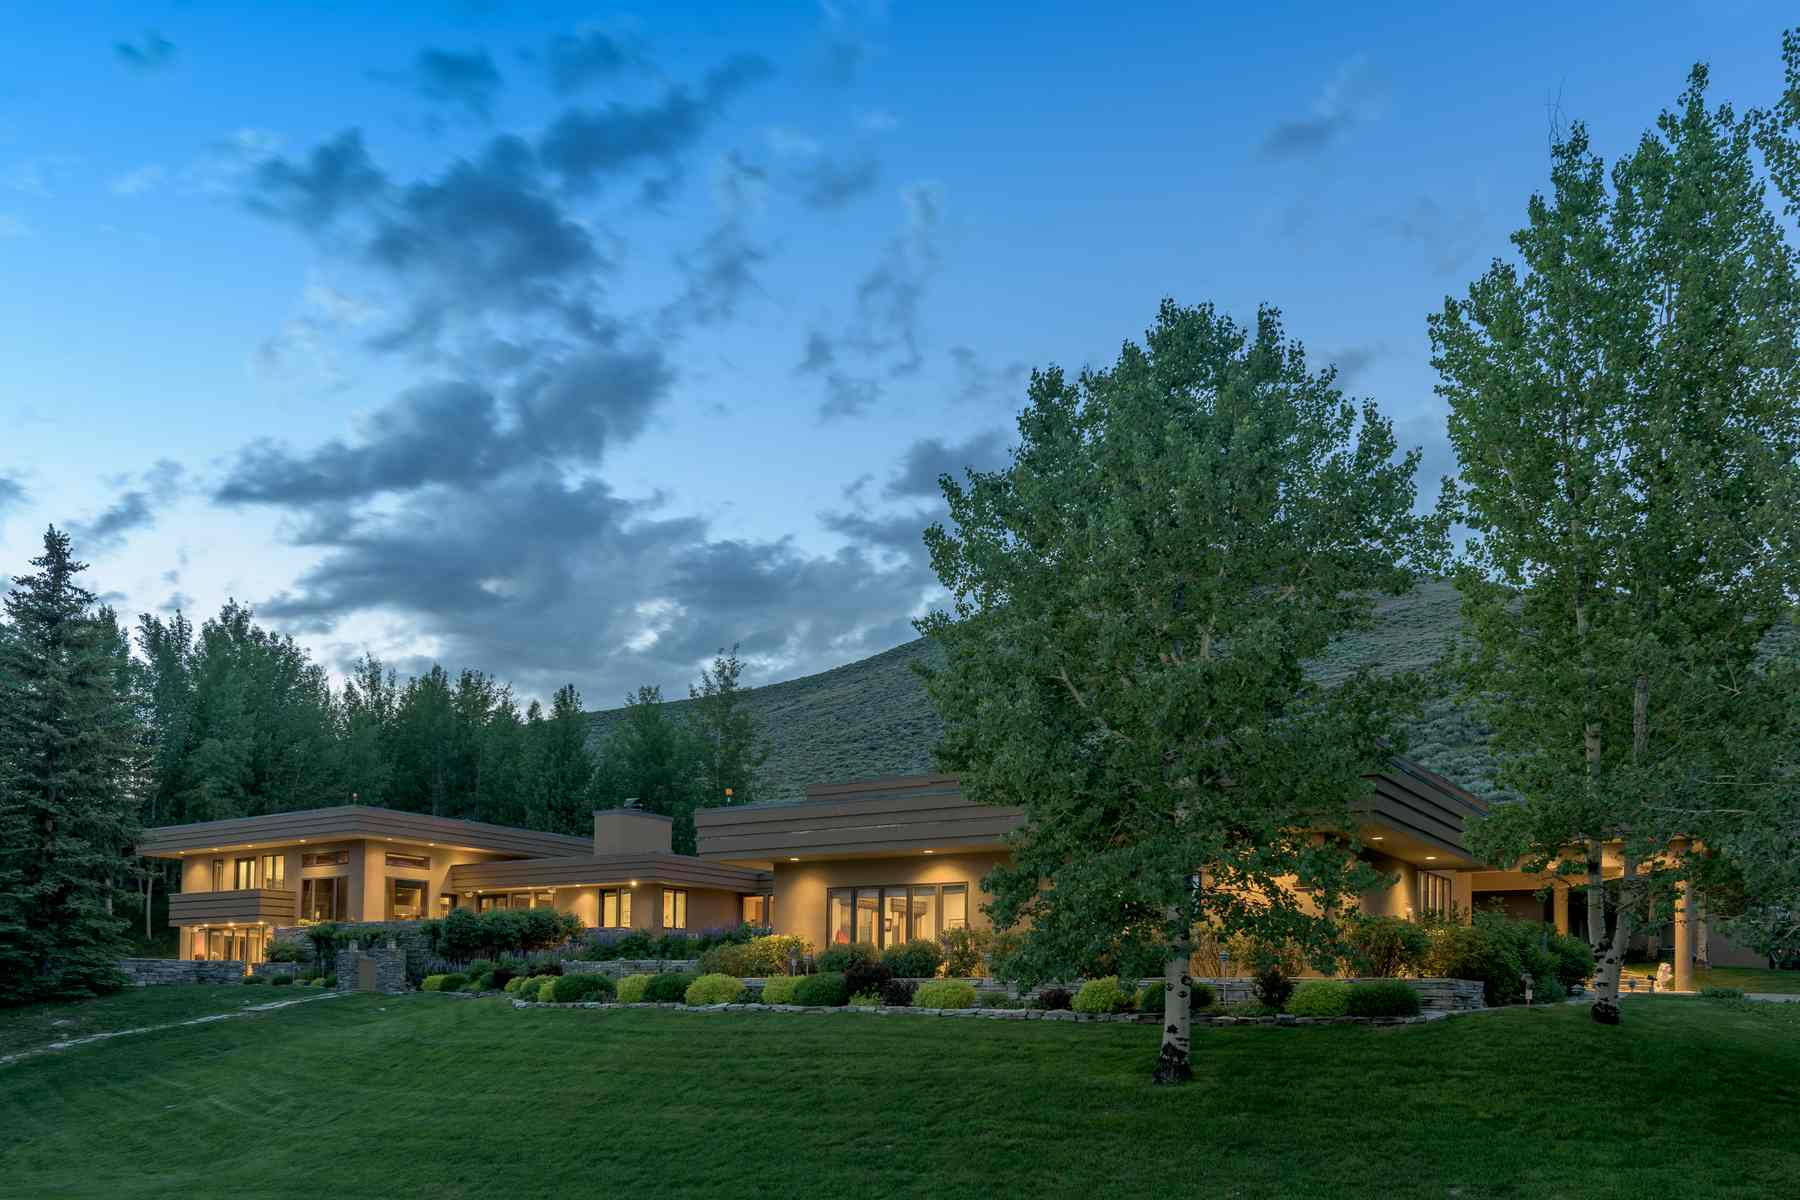 Casa Unifamiliar por un Venta en Spectacular Elevated Setting 455 N. Bigwood Drive Ketchum, Idaho, 83340 Estados Unidos